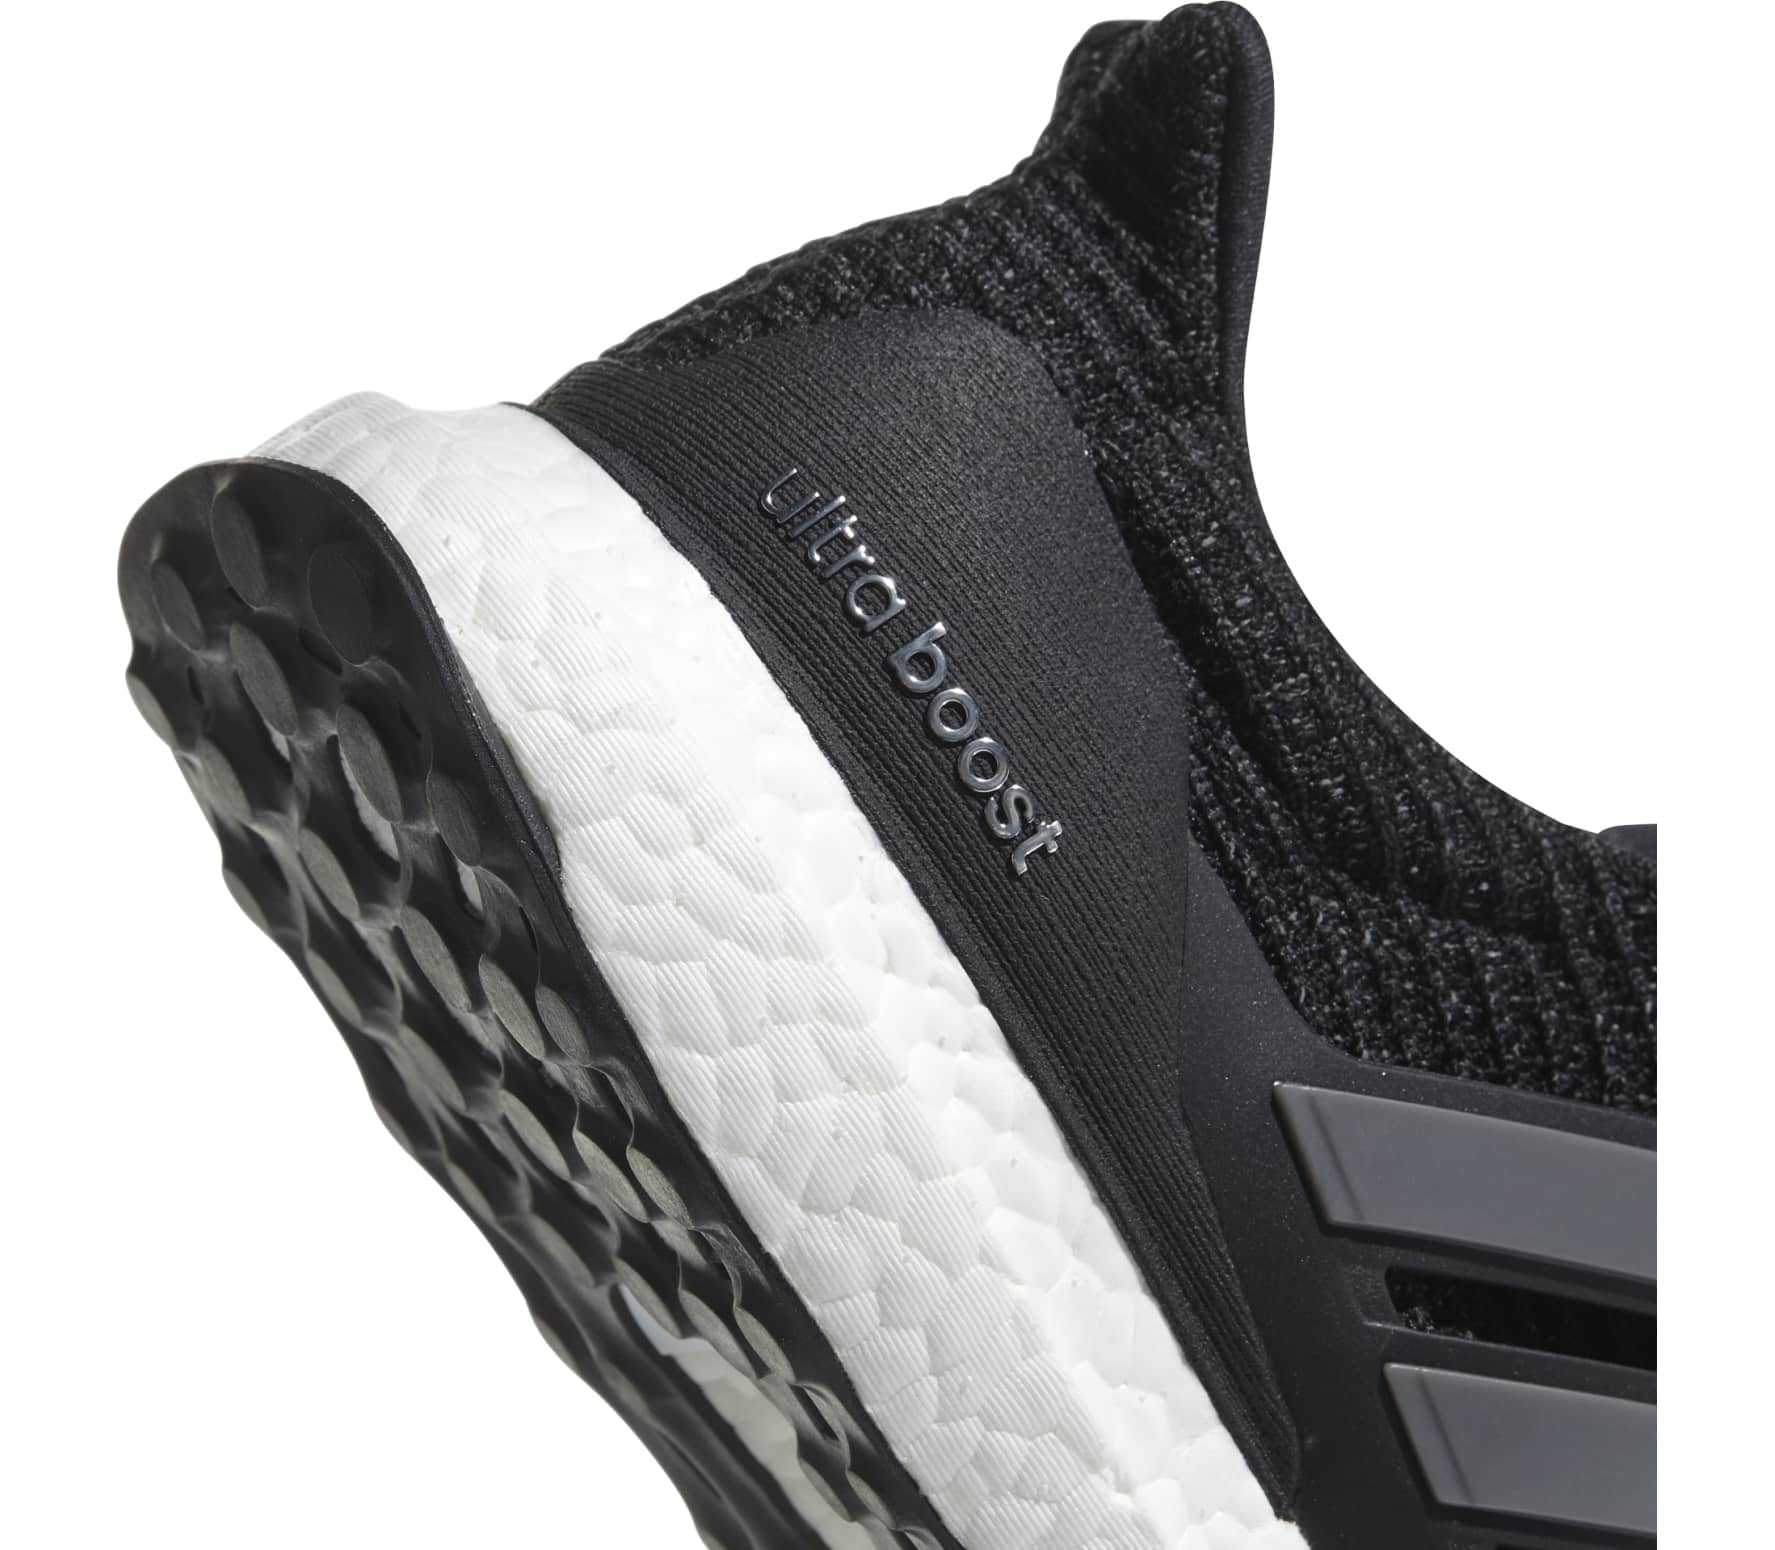 612321d53f285 authentic adidas ultra boost 3 limited edition core black 3d4fa dfe0a   order adidas ultra boost ltd mens running shoes black yellow 1a3f6 f530f